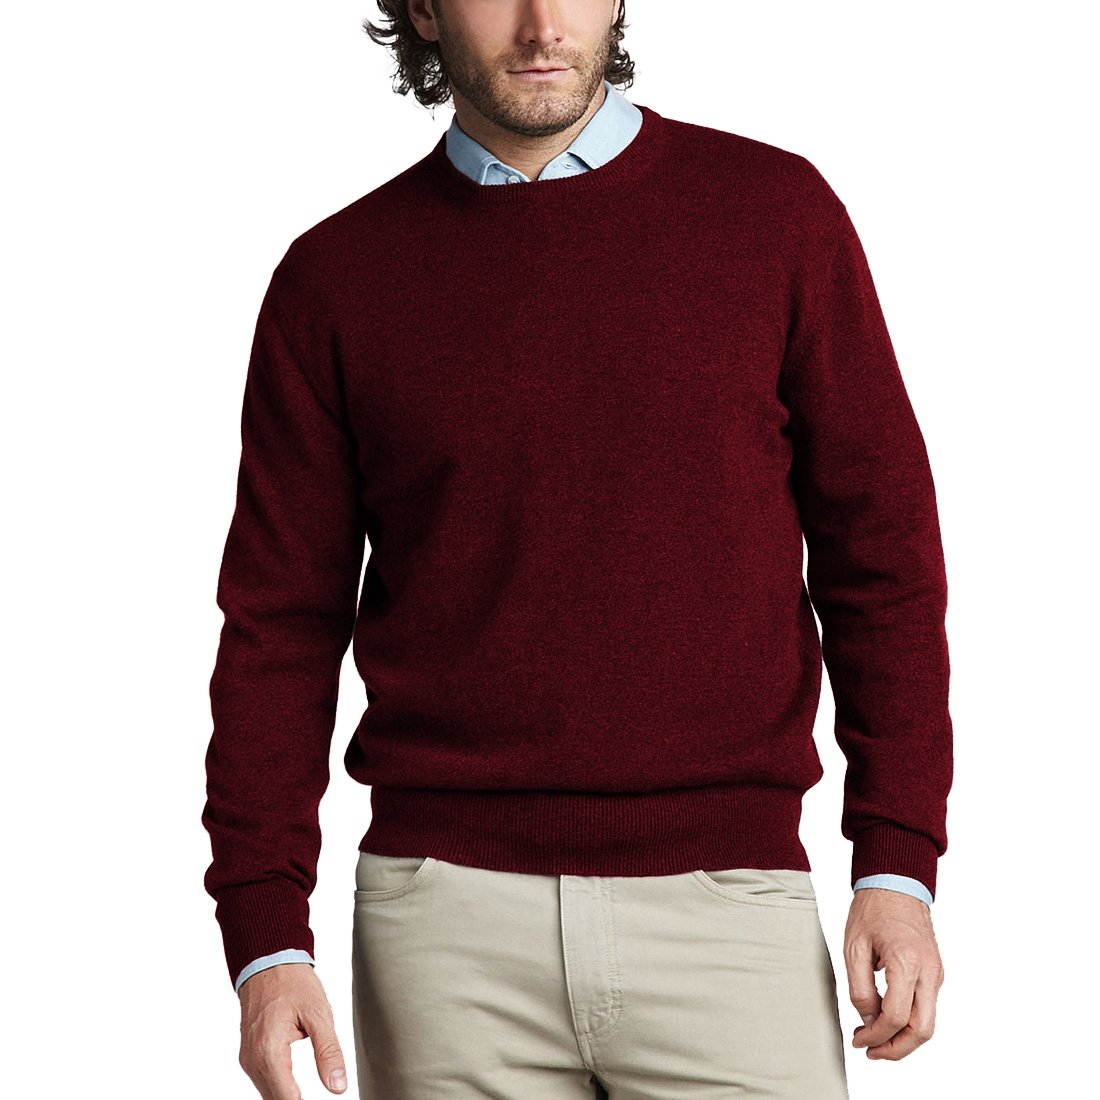 Parisbonbon Men's 100% Cashmere Crew Neck Sweater Color Rosewood Size L by Parisbonbon